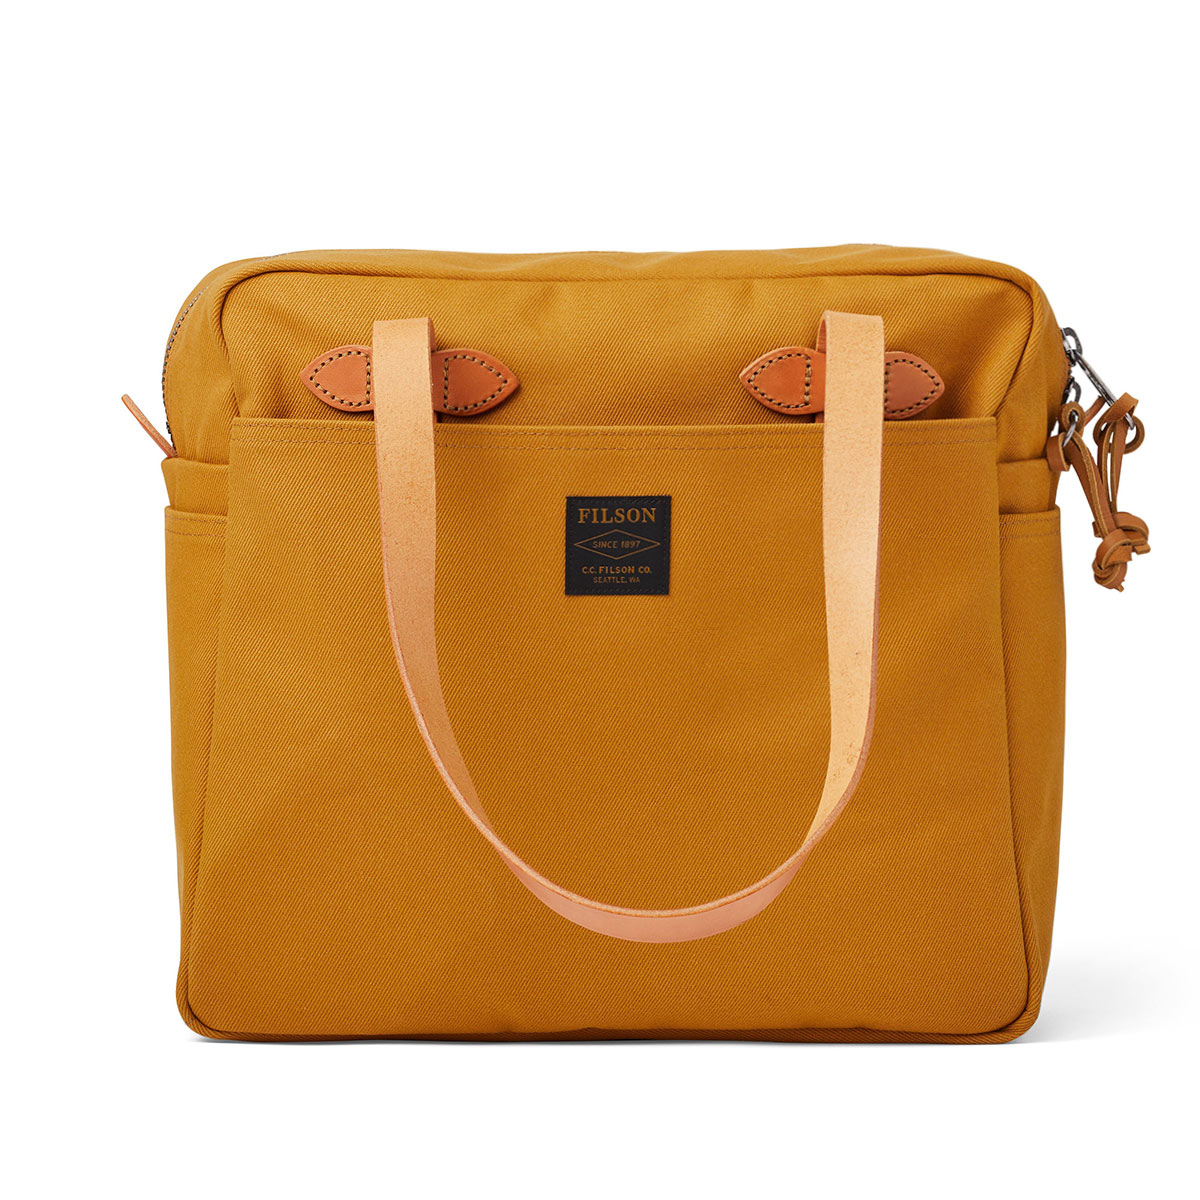 Filson Rugged Twill Tote Bag with Zipper 20192728-Chessie Tan